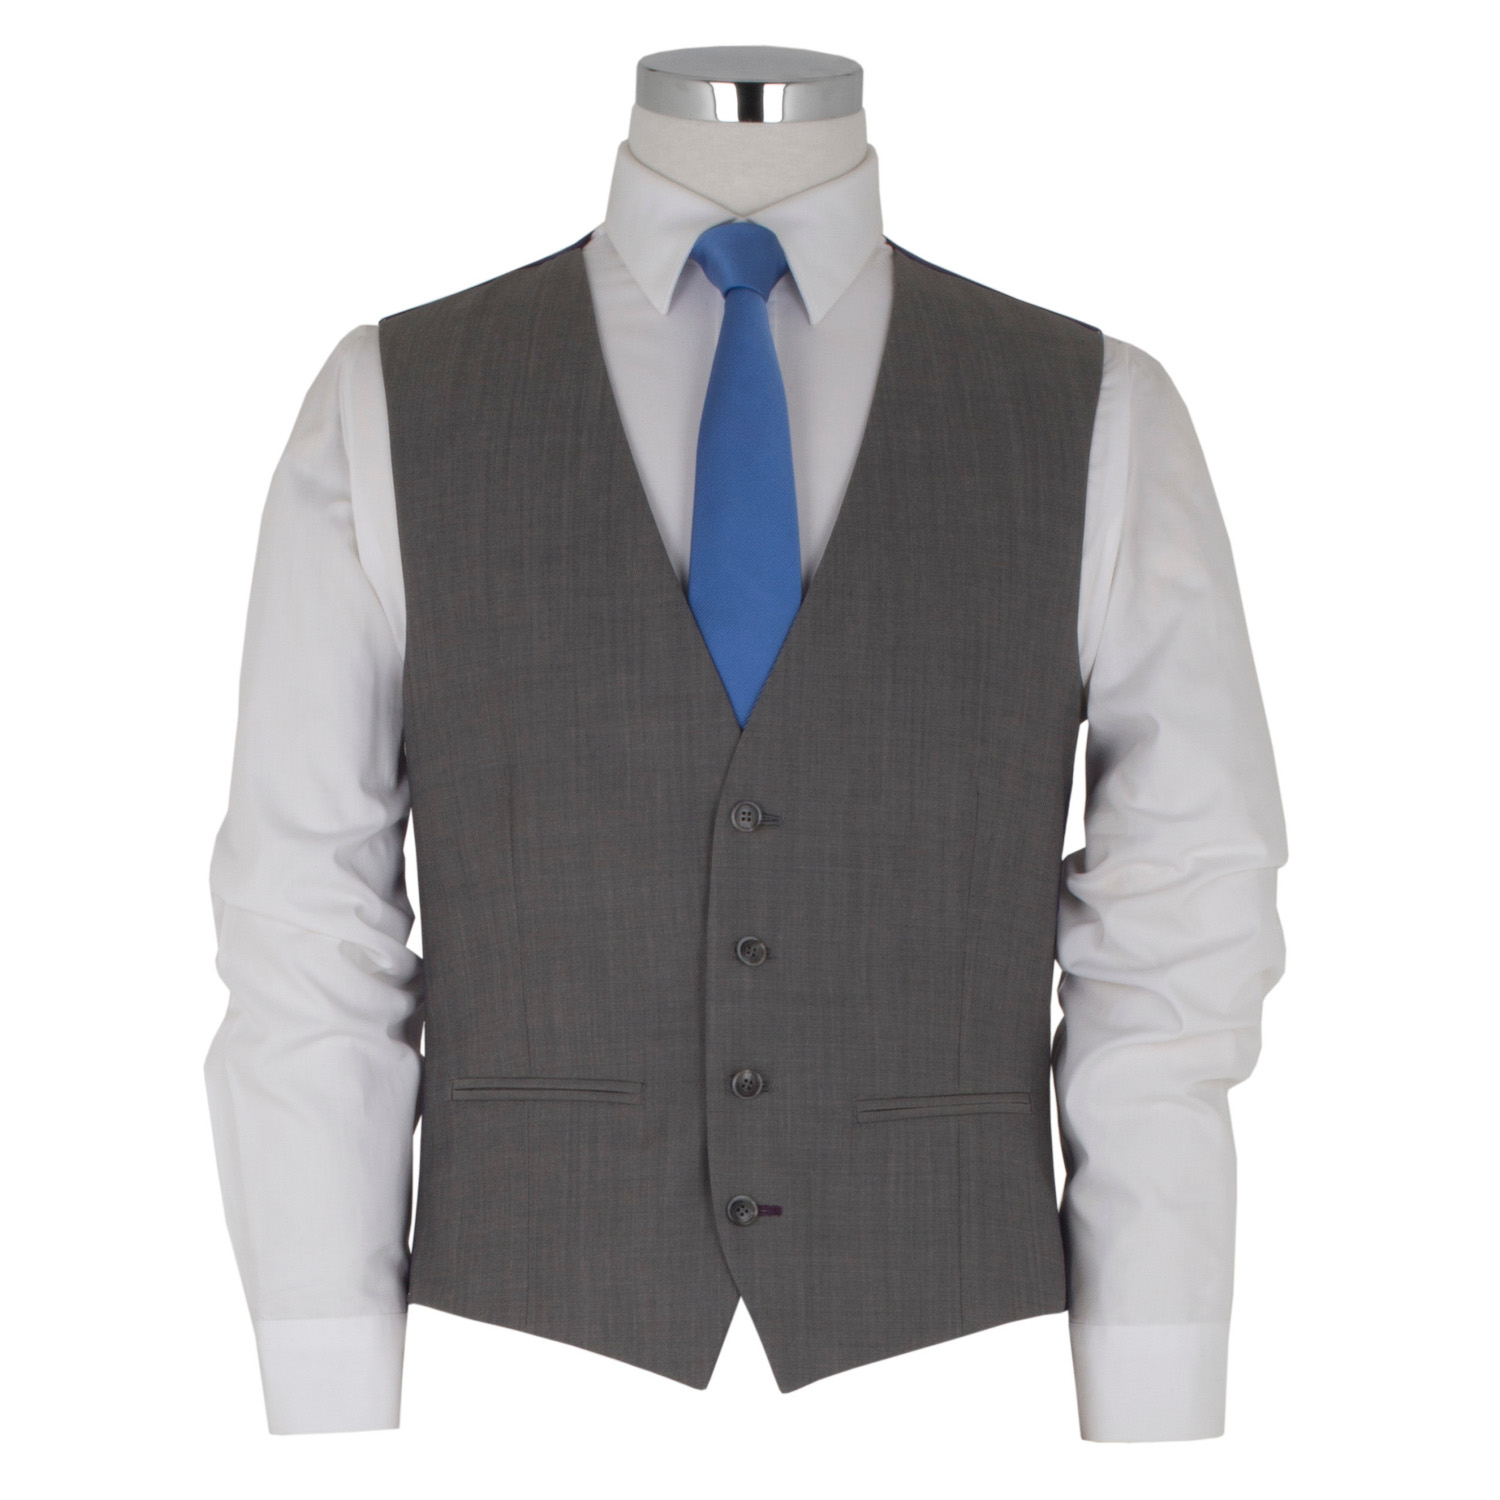 3 Piece Tailored Light Grey